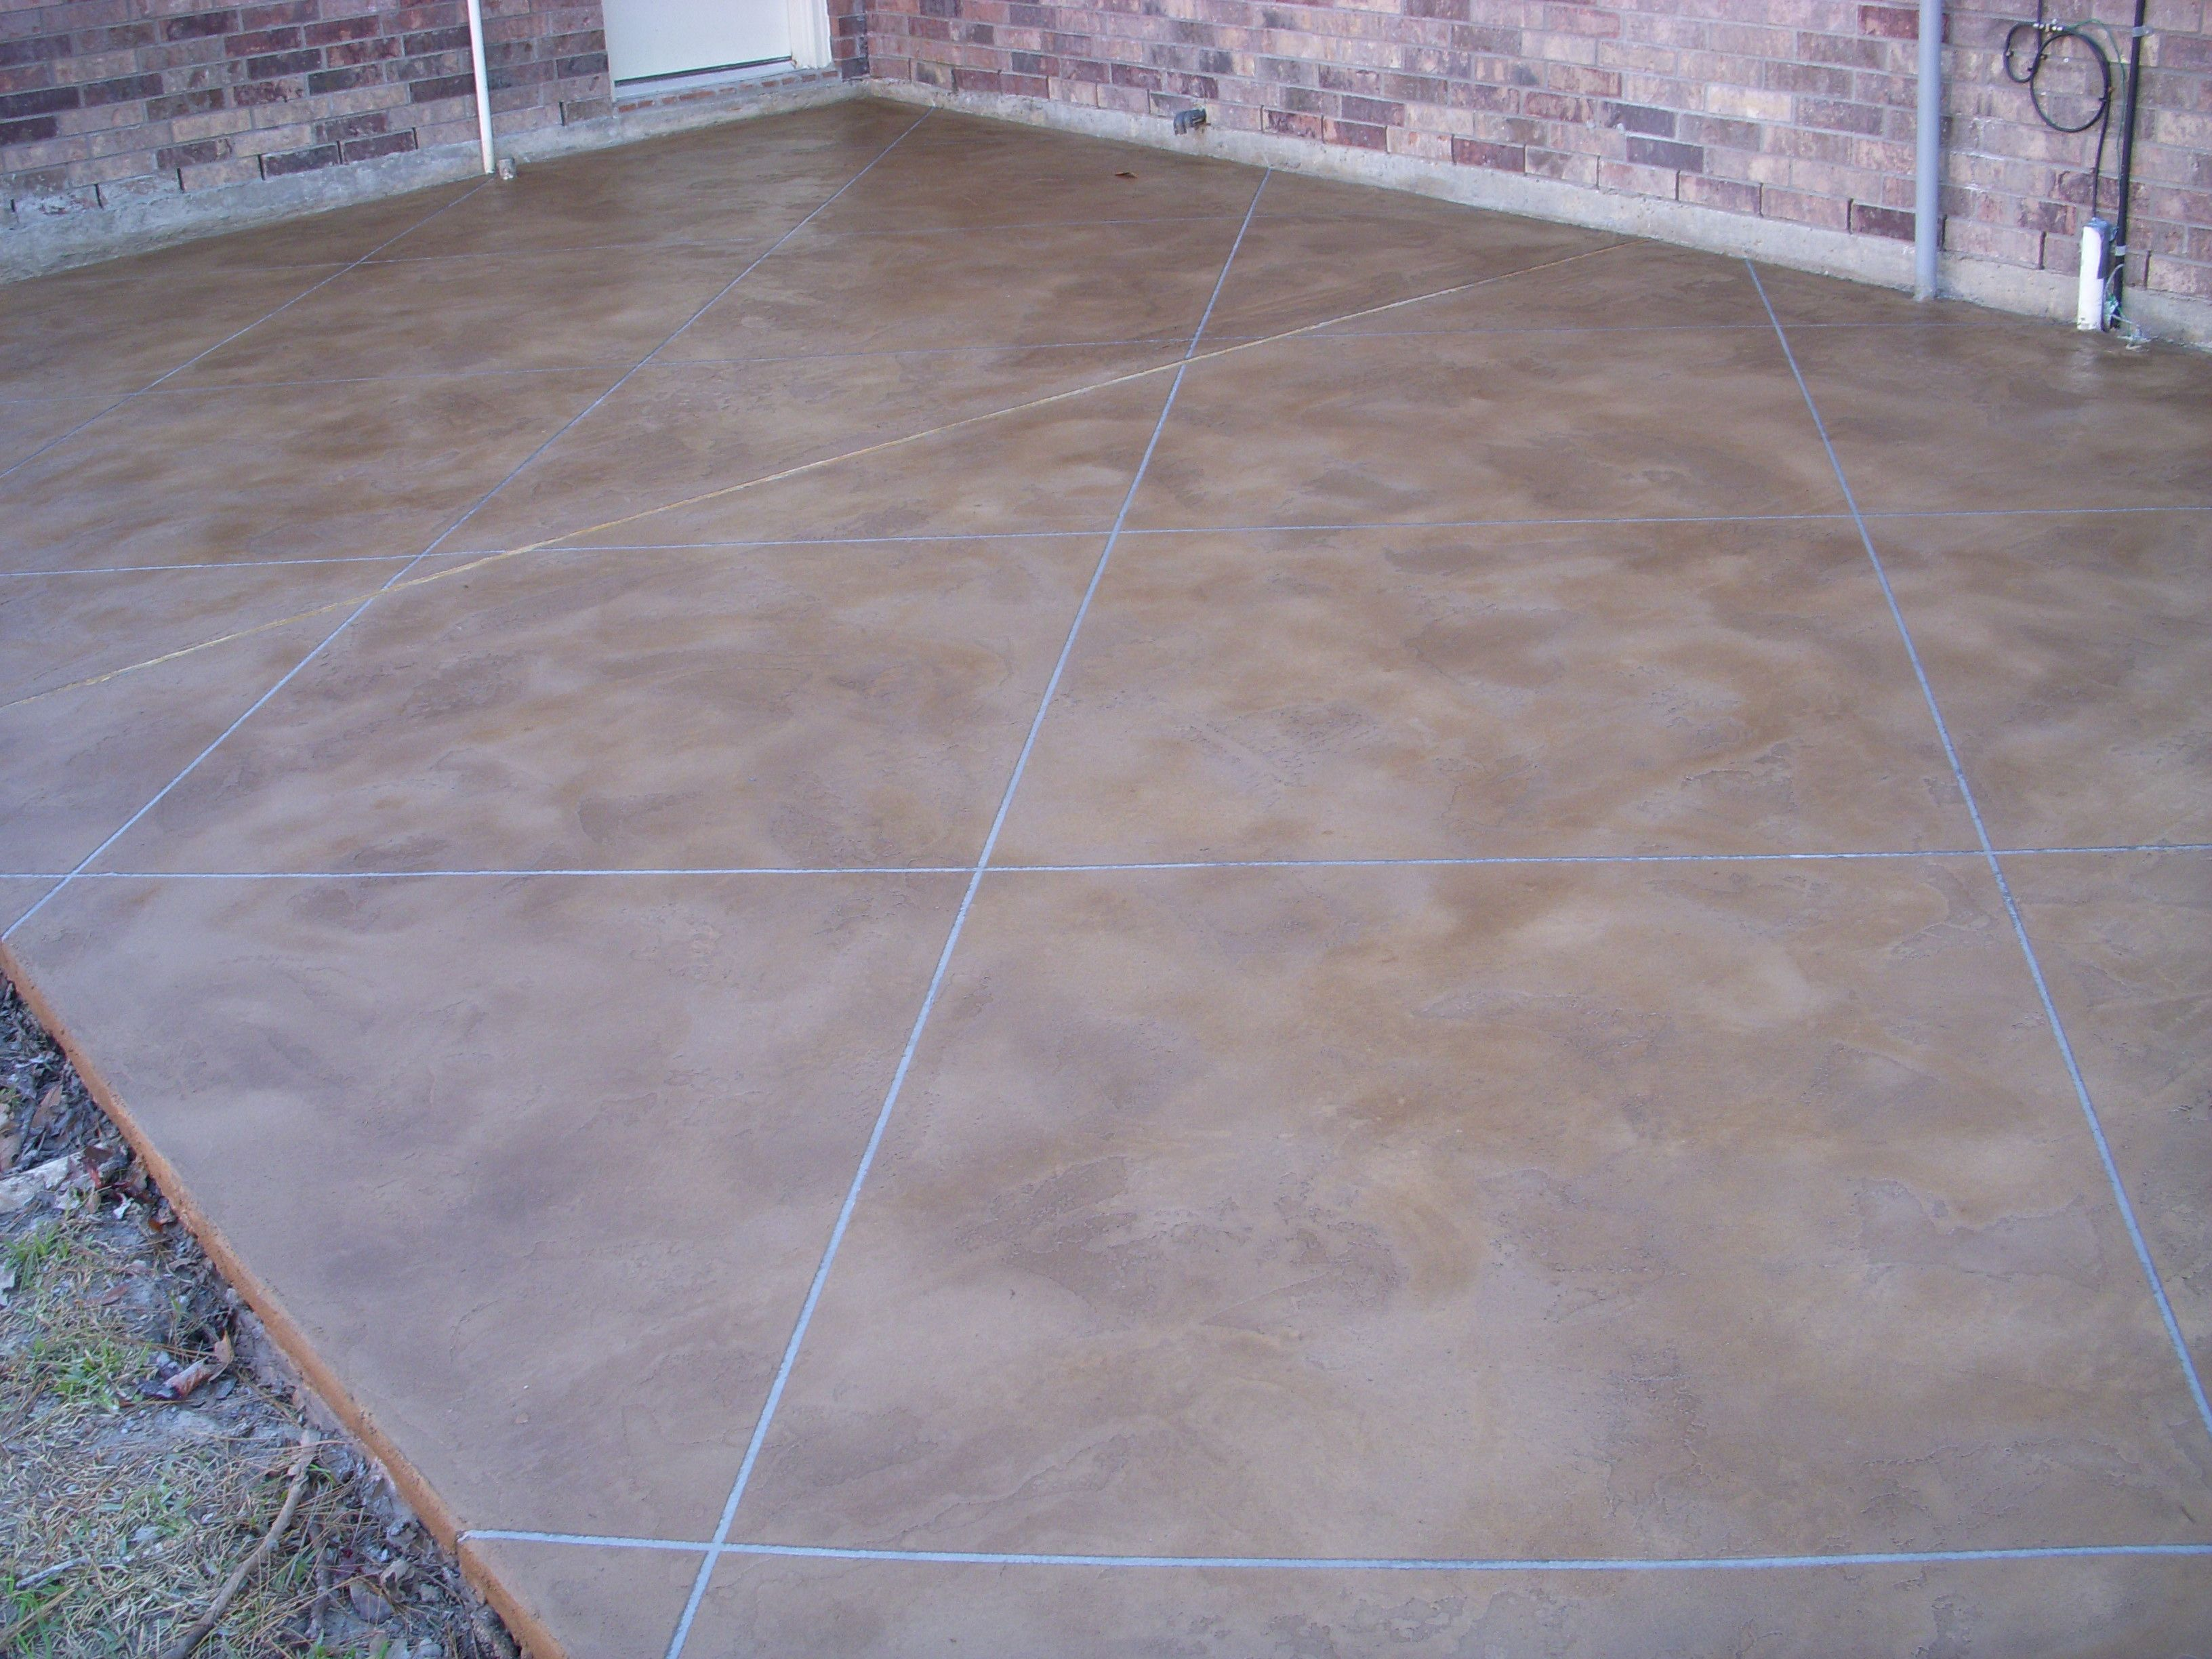 driveway painting concrete refinishing designs ideas florida patios patio